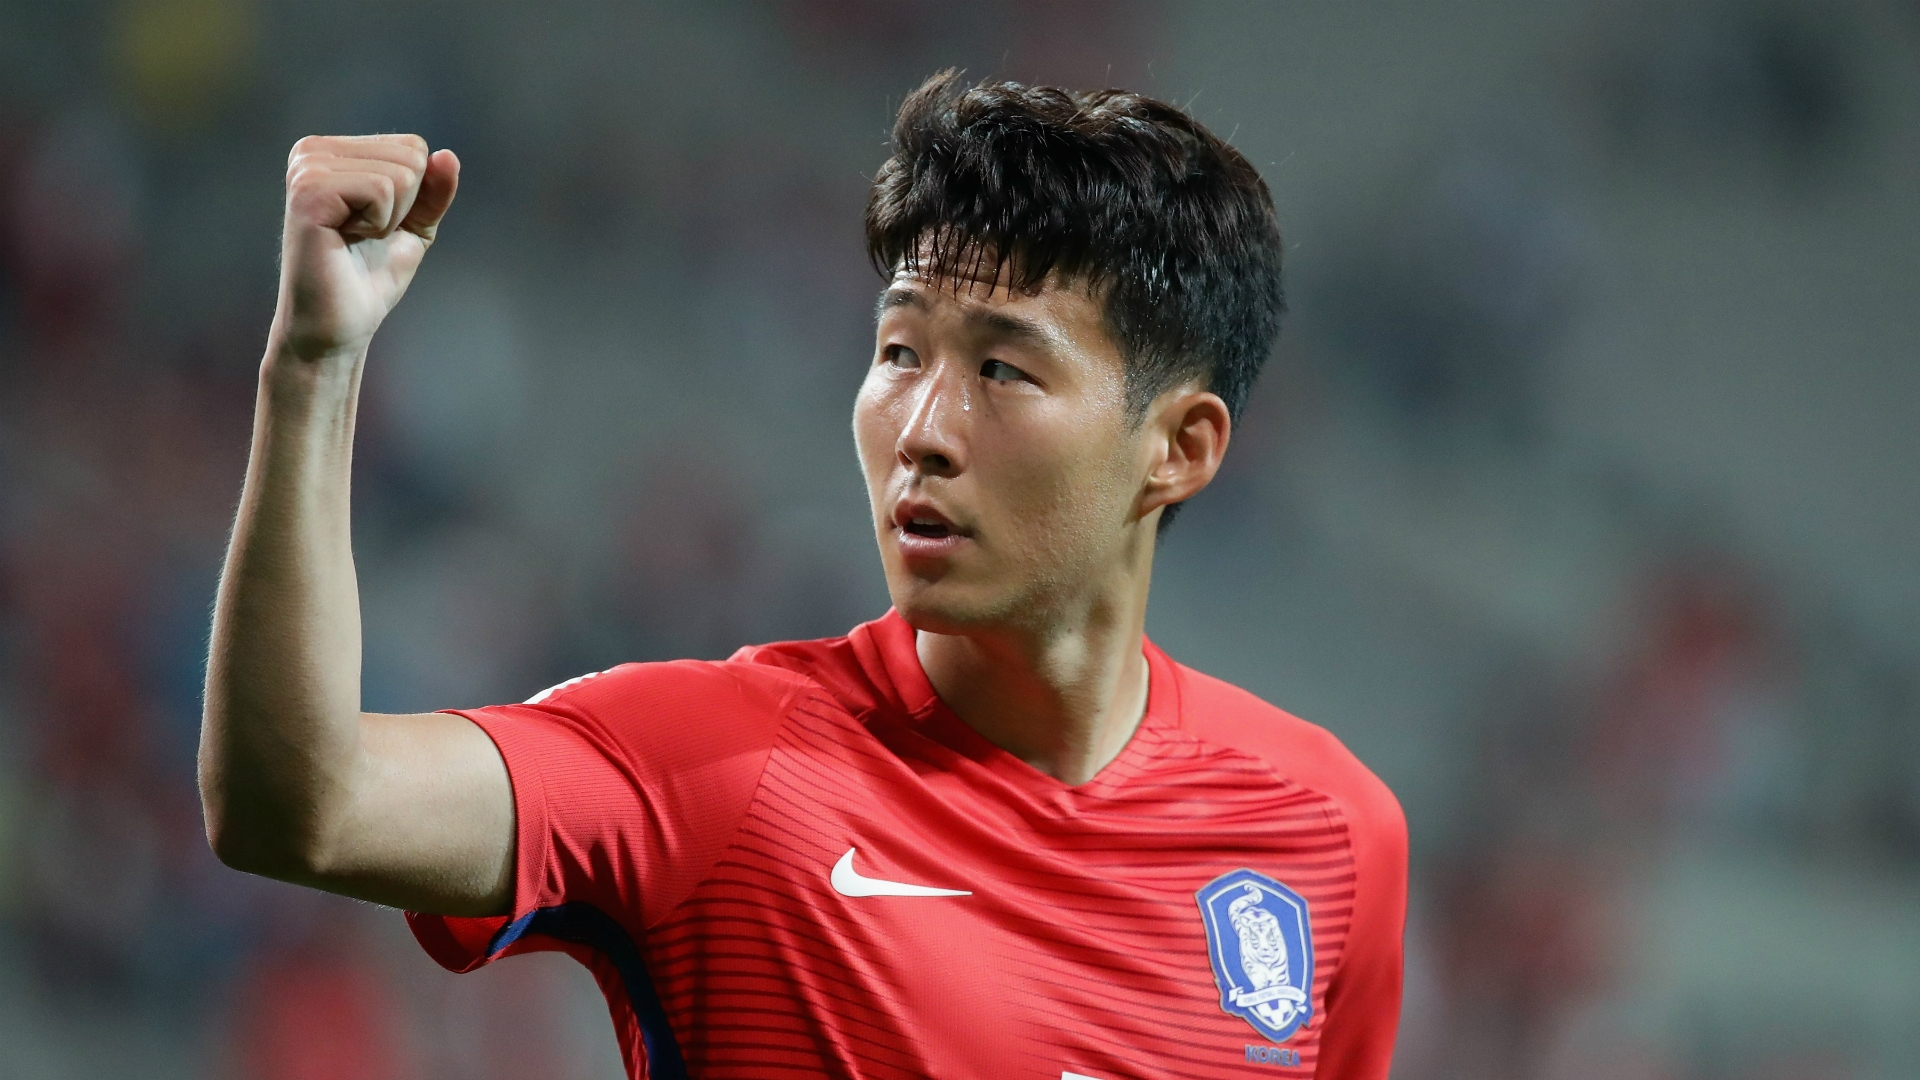 Son-heung-min (South Korea Republic)